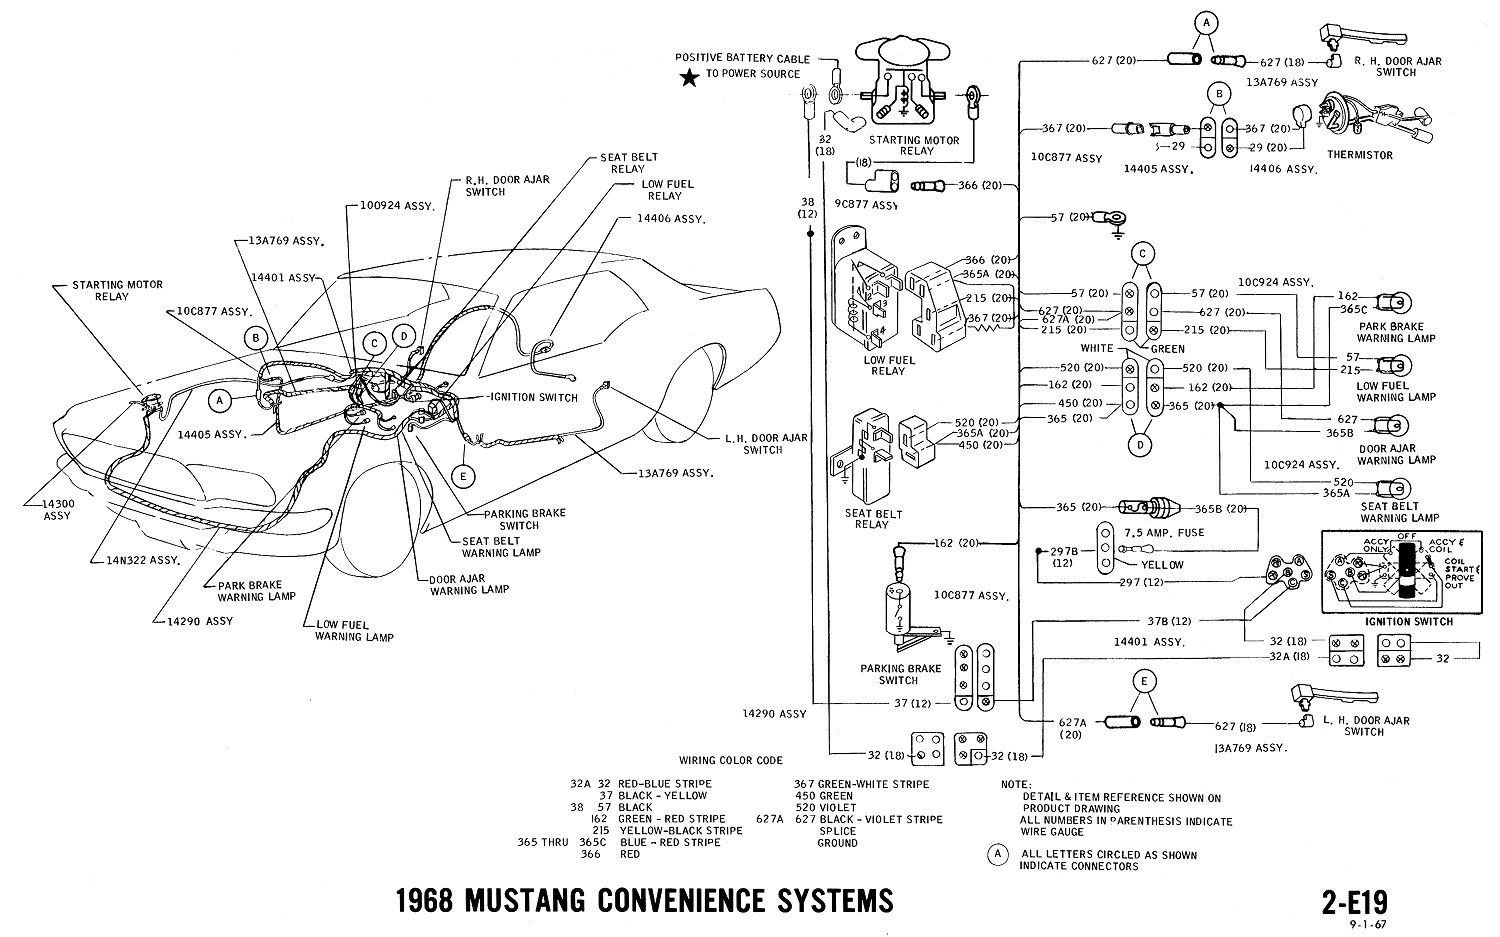 1968 Mustang Wiring Diagram Vacuum Schematics on 1968 mustang dash wiring diagram